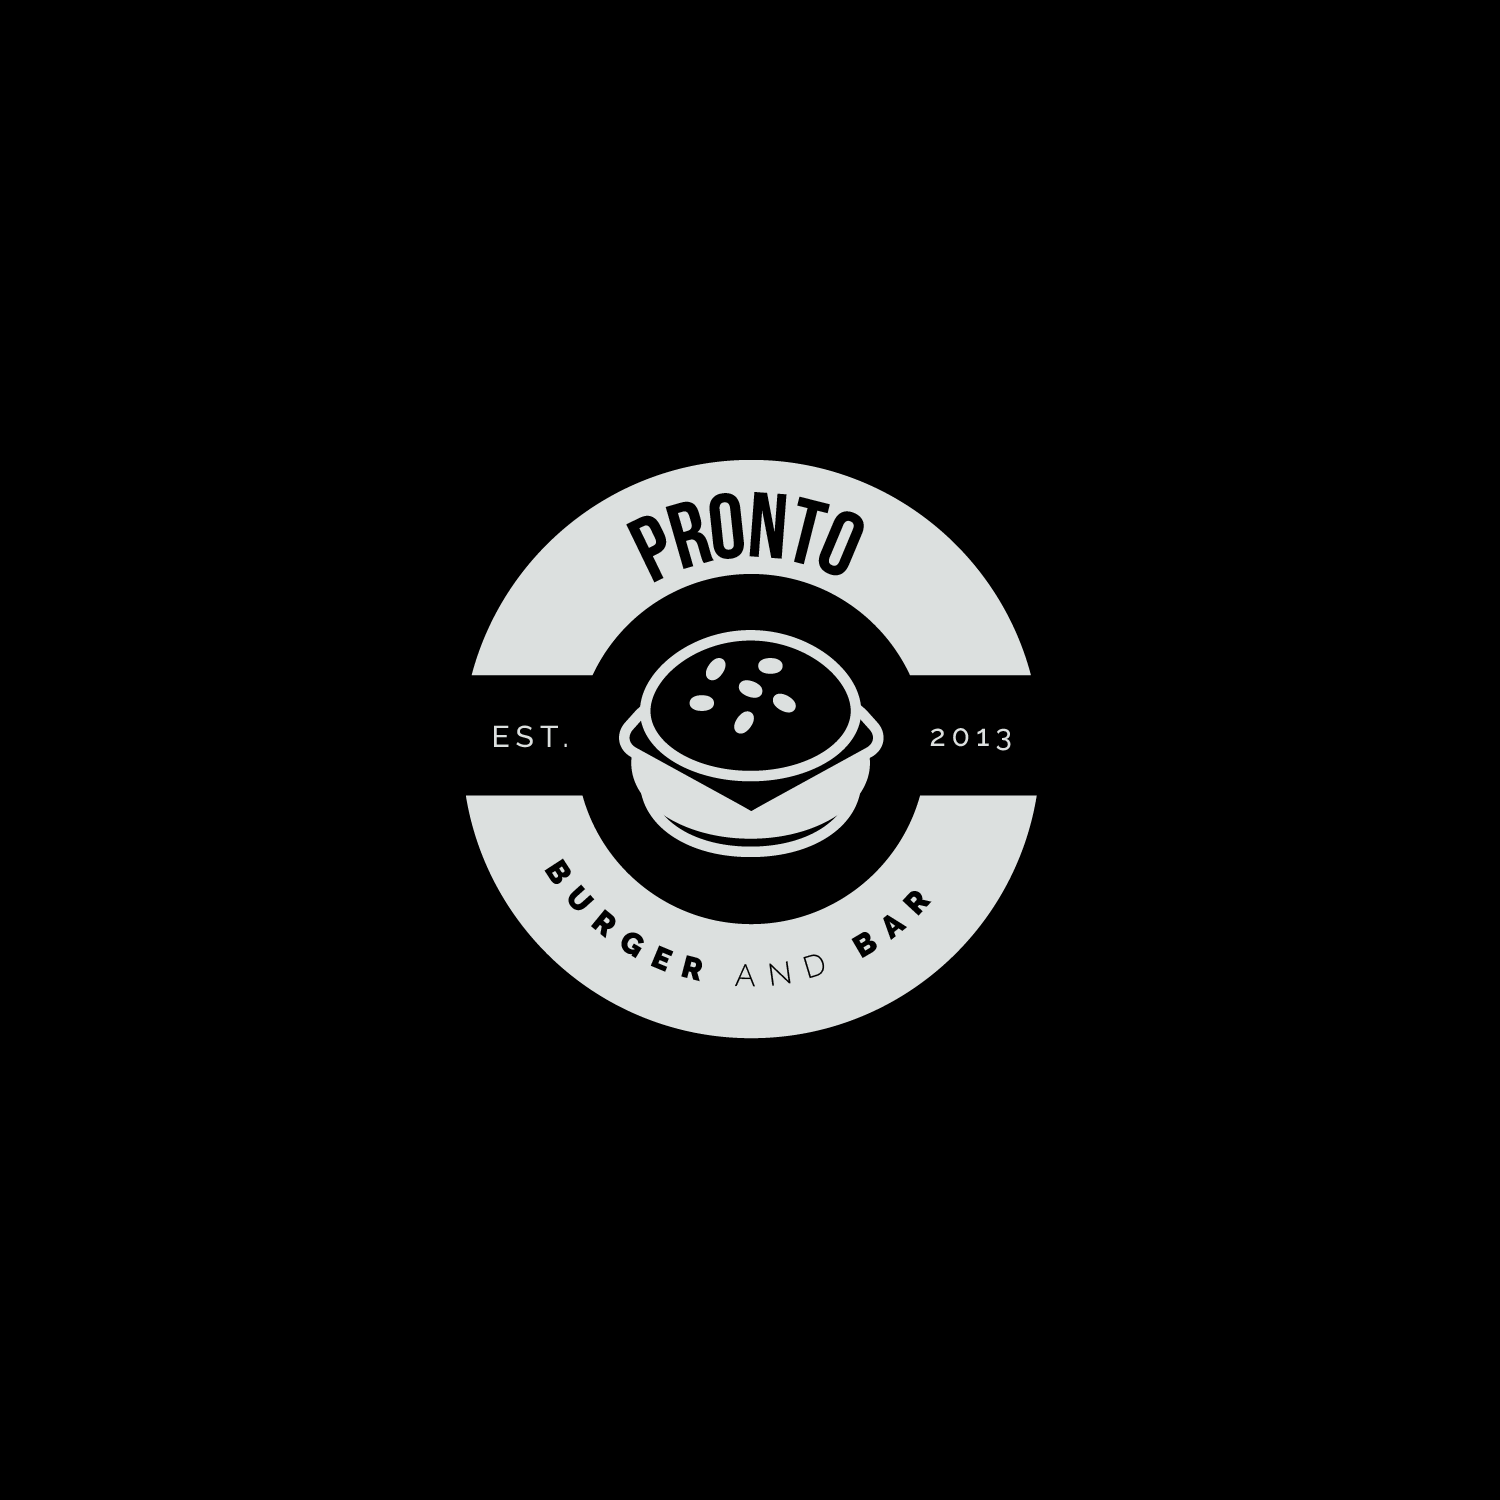 Favorito Check out this Elegant, Professional, Burger Restaurant Logo QM14